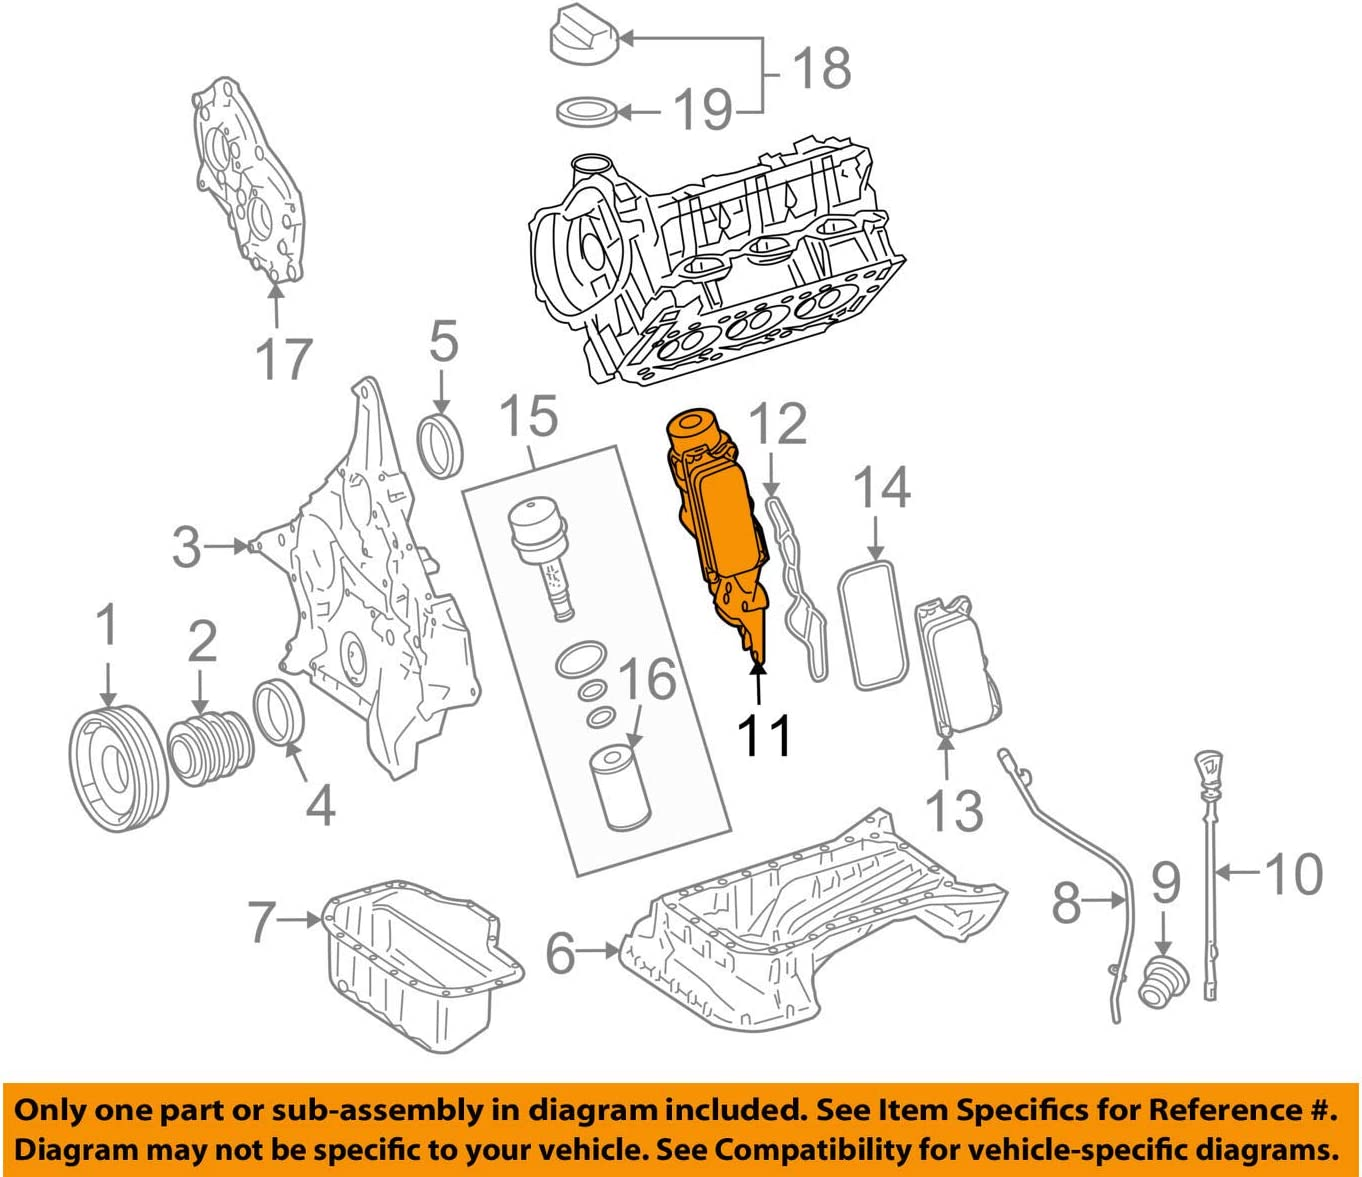 engine oil diagram amazon com mercedes benz 272 180 05 10  engine oil cooler automotive motor oil diagram amazon com mercedes benz 272 180 05 10